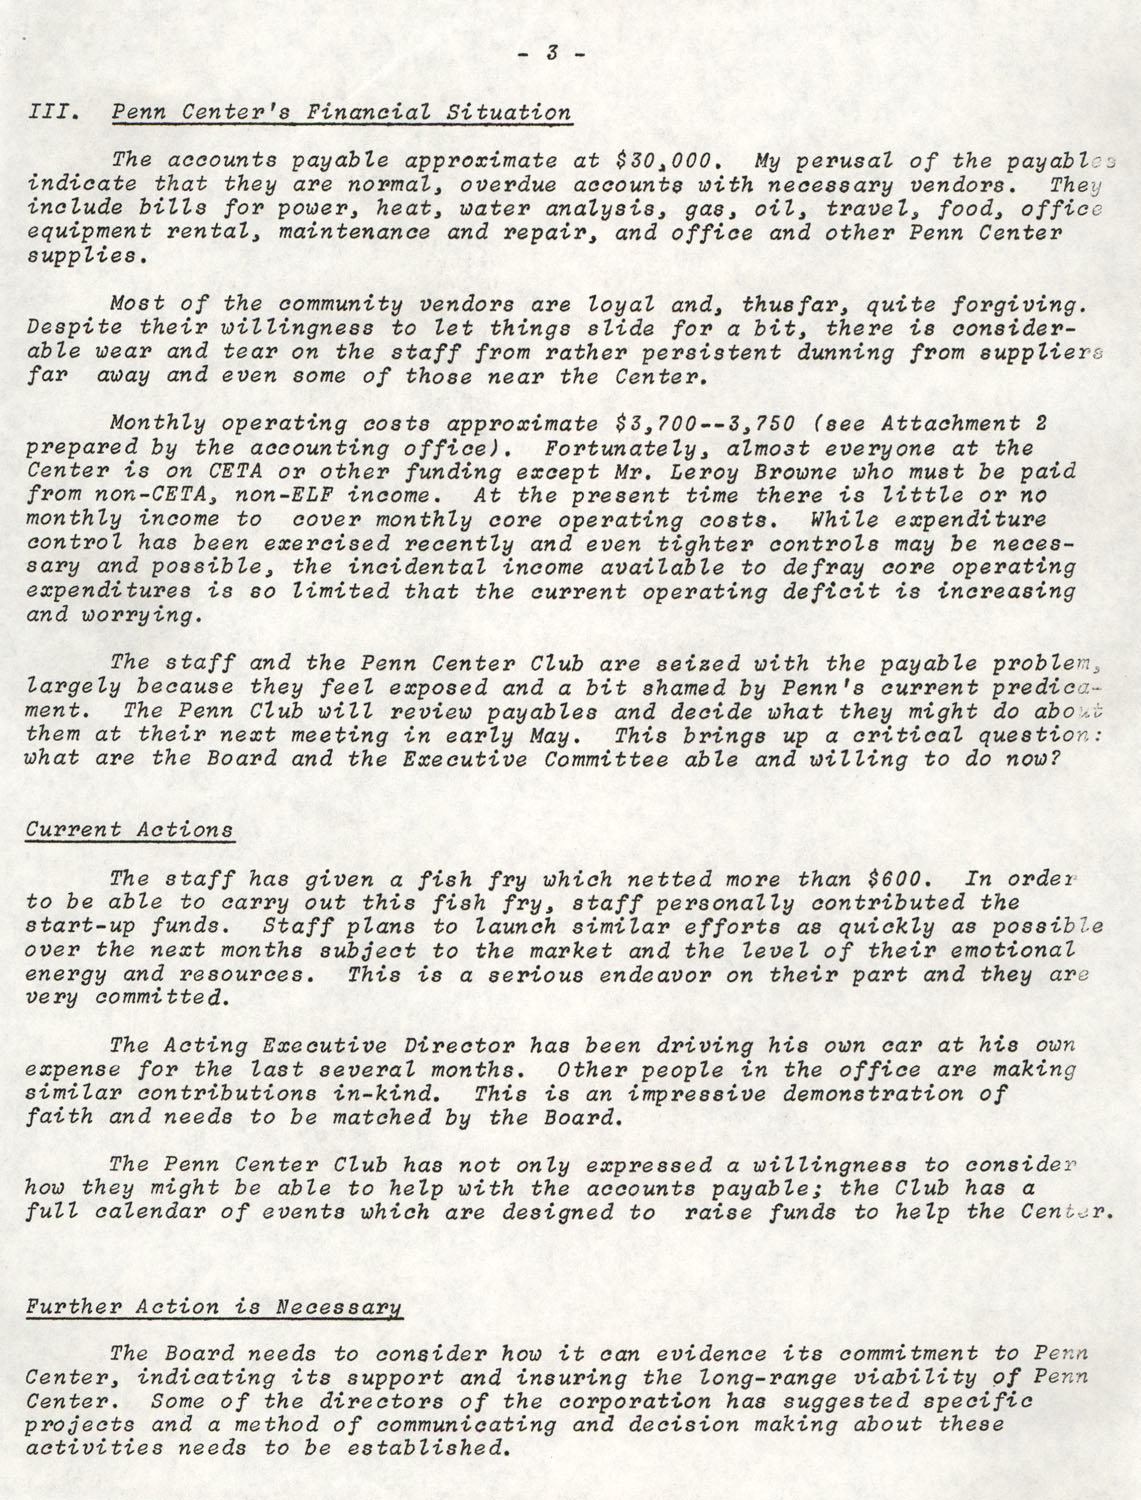 Planning and Management Assistance Project Report, Penn Community Services, April 1978, Page 3